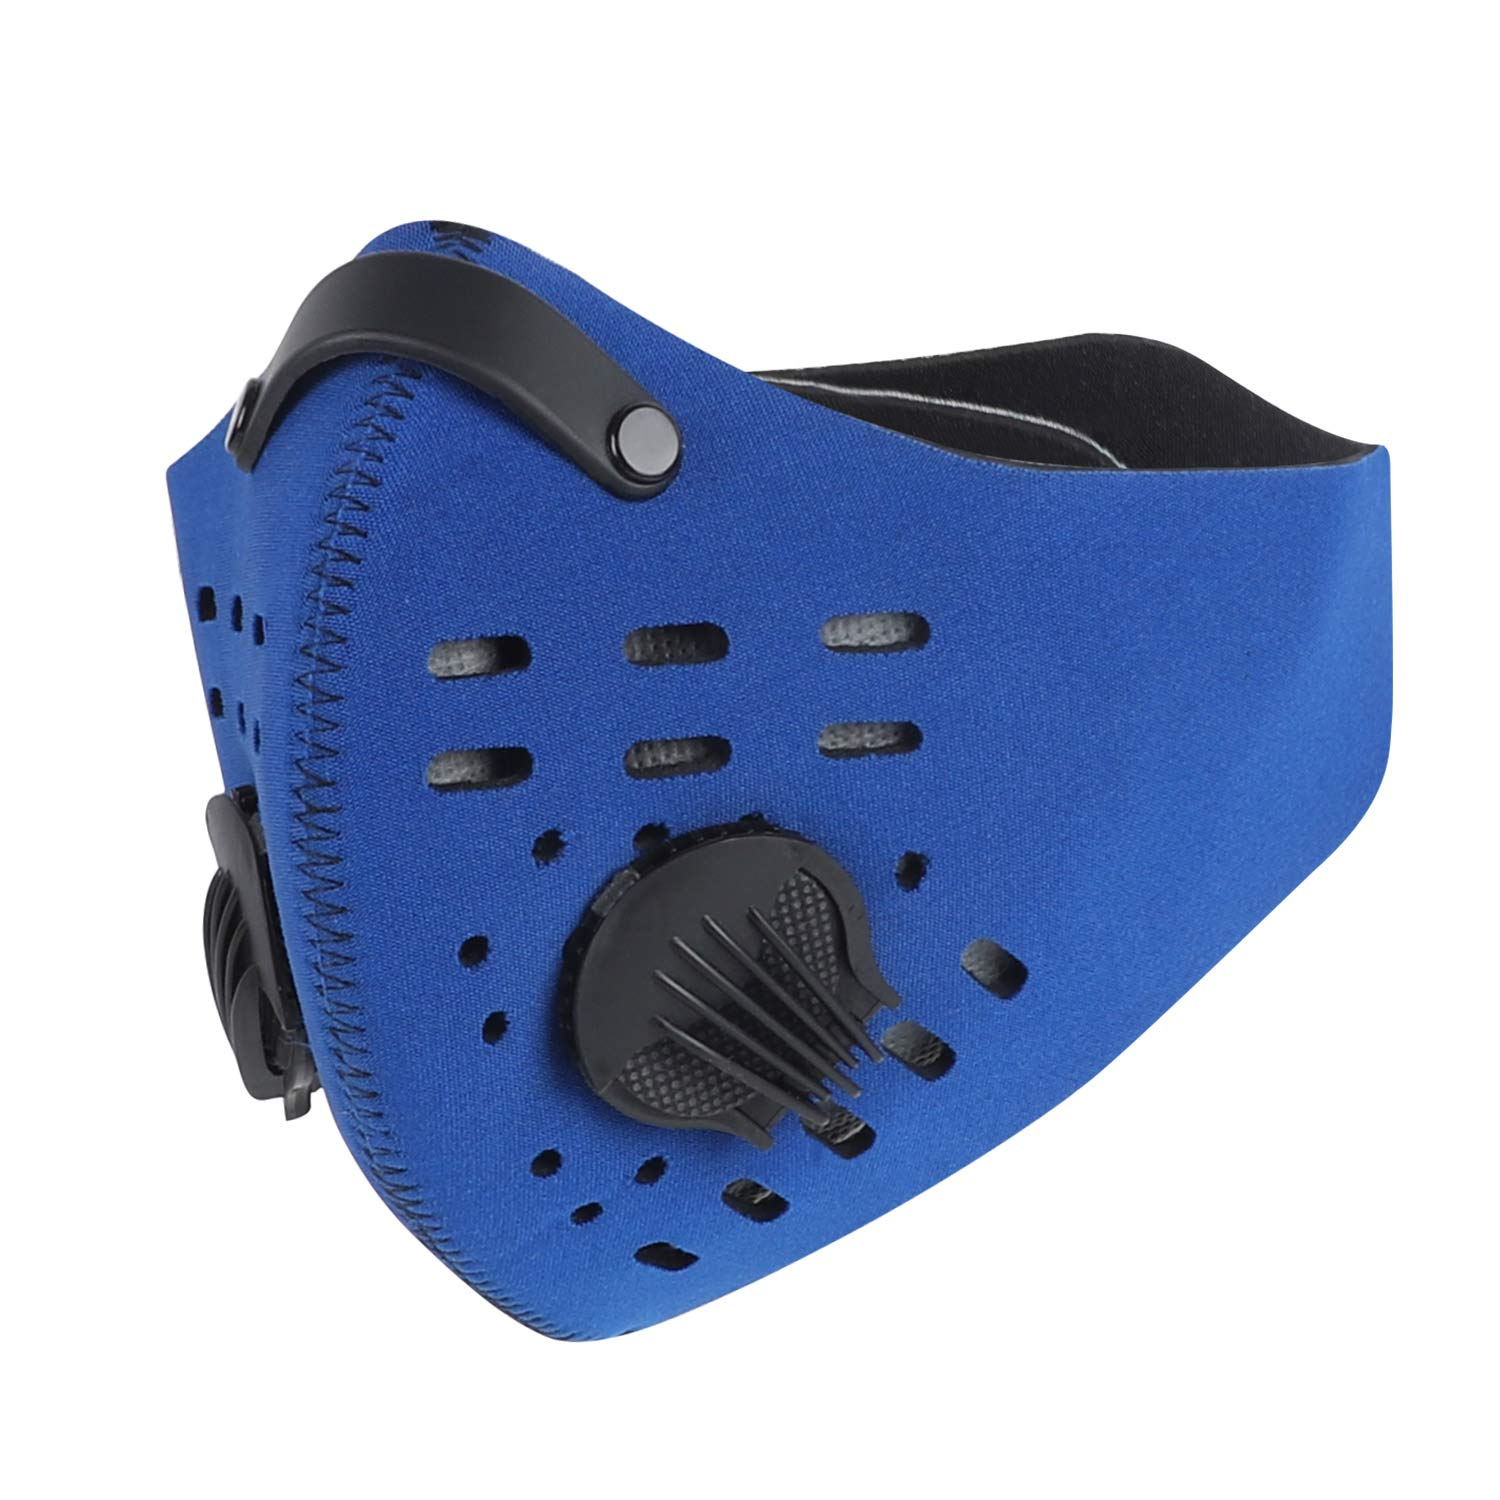 West Biking Mesh Dust Pollution Mask For Air Filtration Sport Mask With Exhalation Valves Filters Activated Carbon N99 Pm2 5 Filters Air Purifier 01 Buy Online In Jamaica At Desertcart